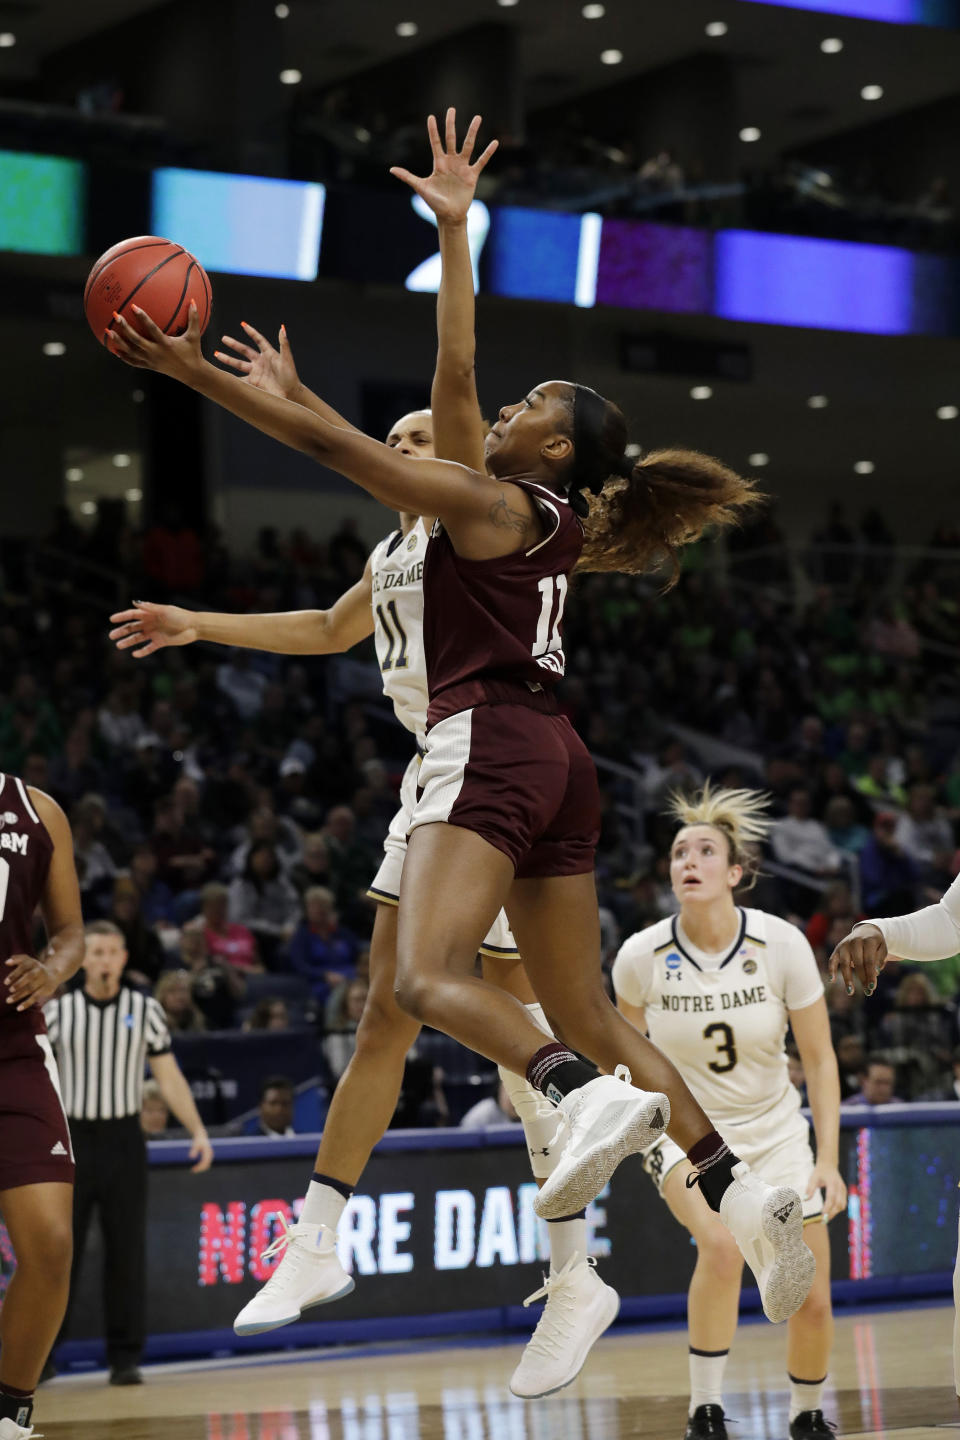 Texas A&M's Kayla Wells goes up for a basket against Notre Dame's Brianna Turner during the first half of a regional semifinal game in the NCAA women's college basketball tournament, Saturday, March 30, 2019, in Chicago. (AP Photo/Nam Y. Huh)